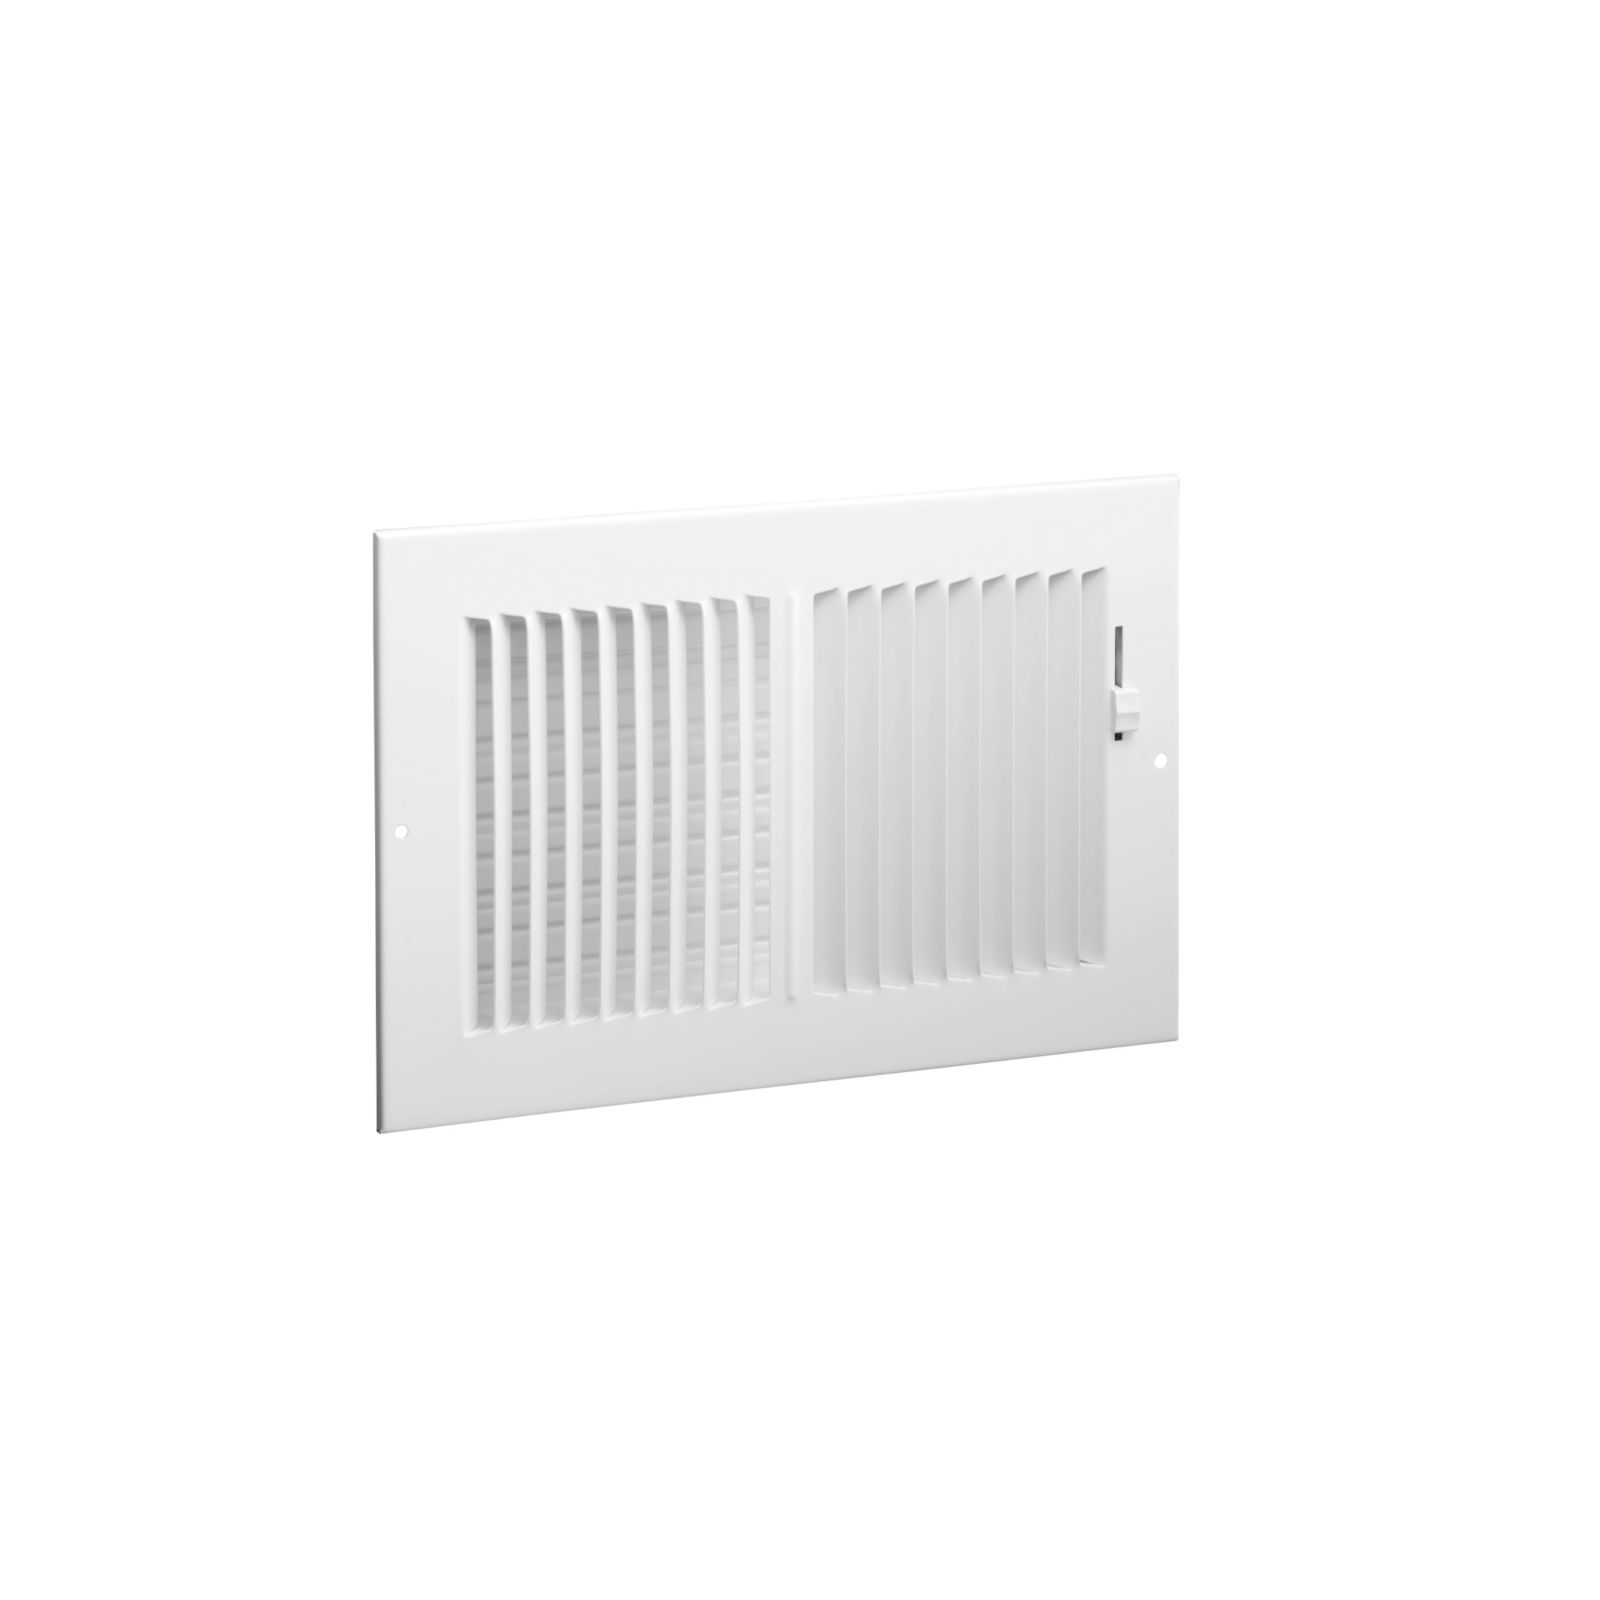 "Hart & Cooley 043833 - #682 Steel 2-Way Sidewall/Ceiling Register, Multi-Shutter Damper with Plastic Handle, White, 12"" X 4"""